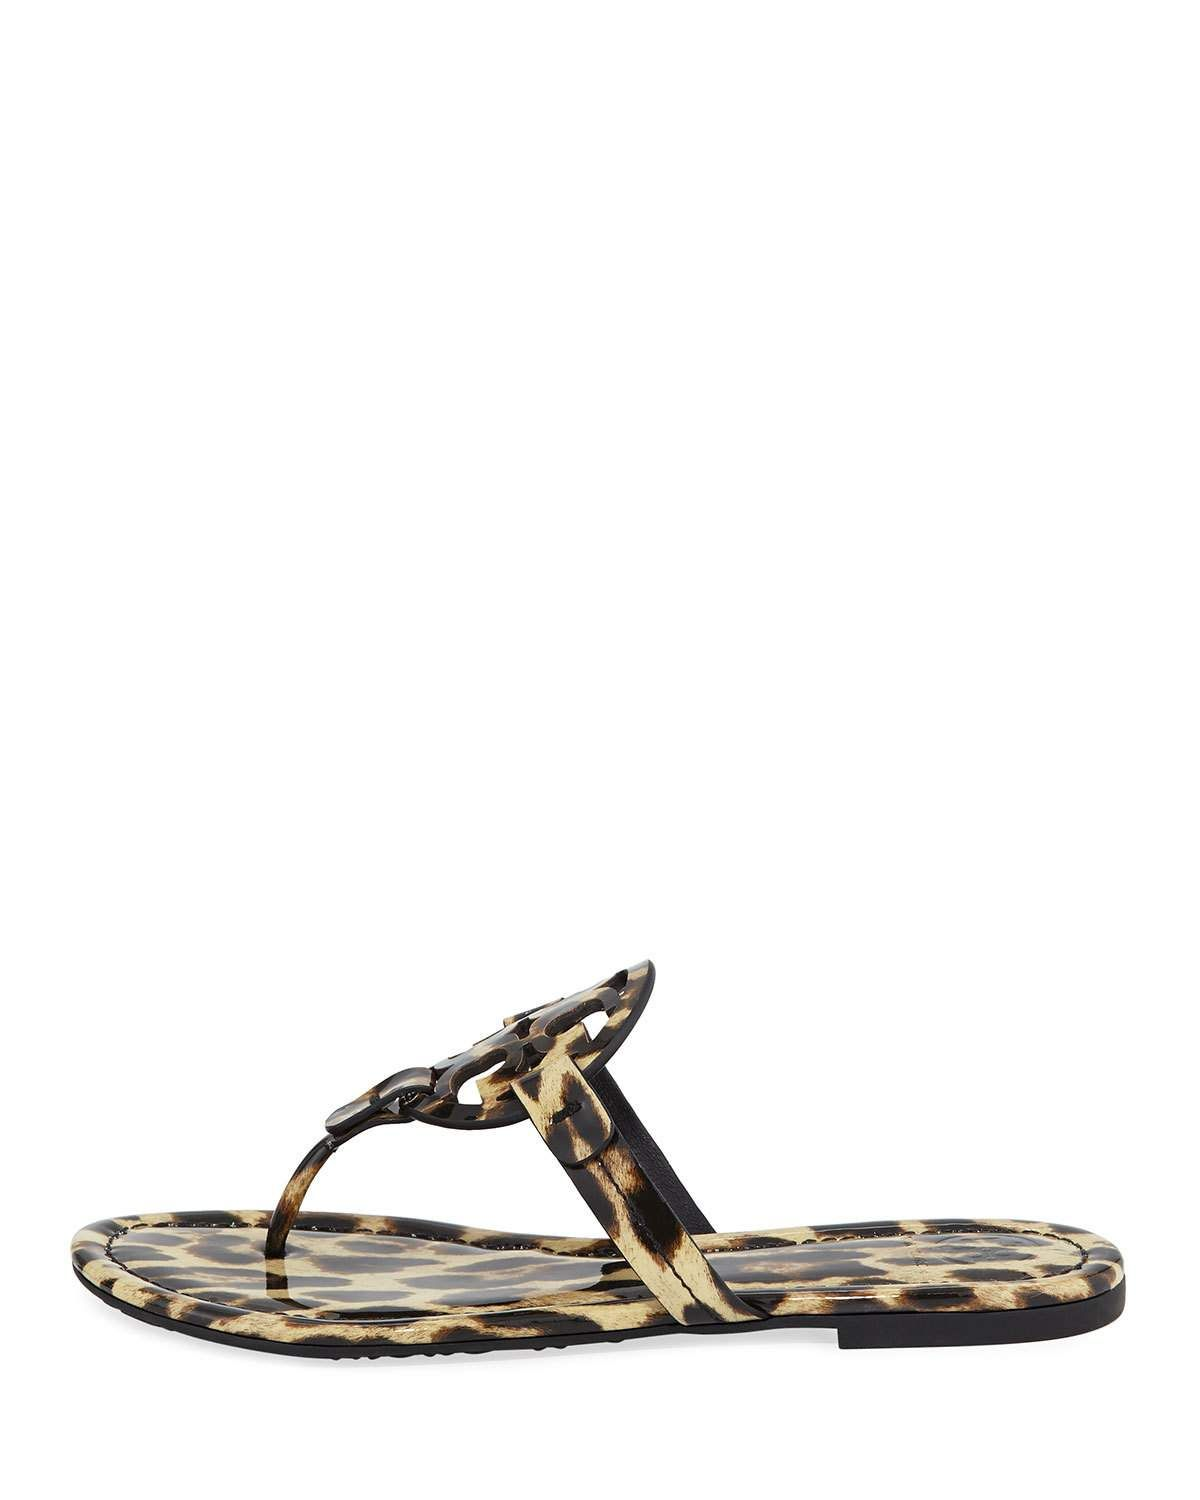 b6da2a9bef06 Tory Burch Miller Printed Flat Thong Sandals | Products | Sandals ...